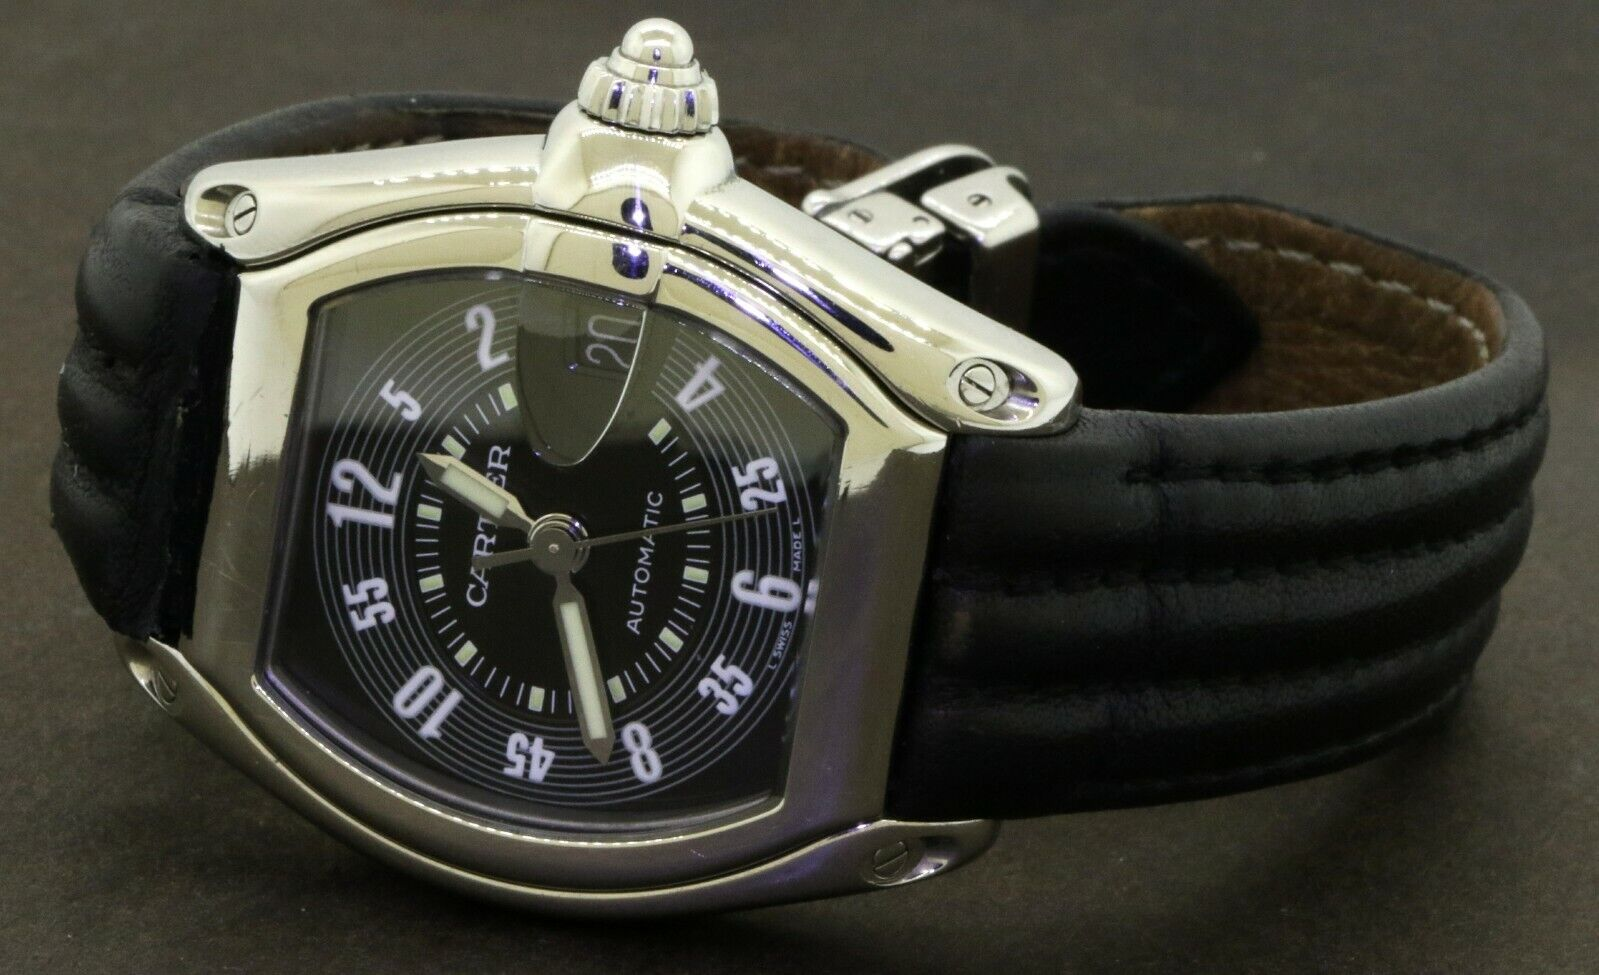 Cartier Roadster 2510 automatic SS high fashion men's watch - watch picture 1